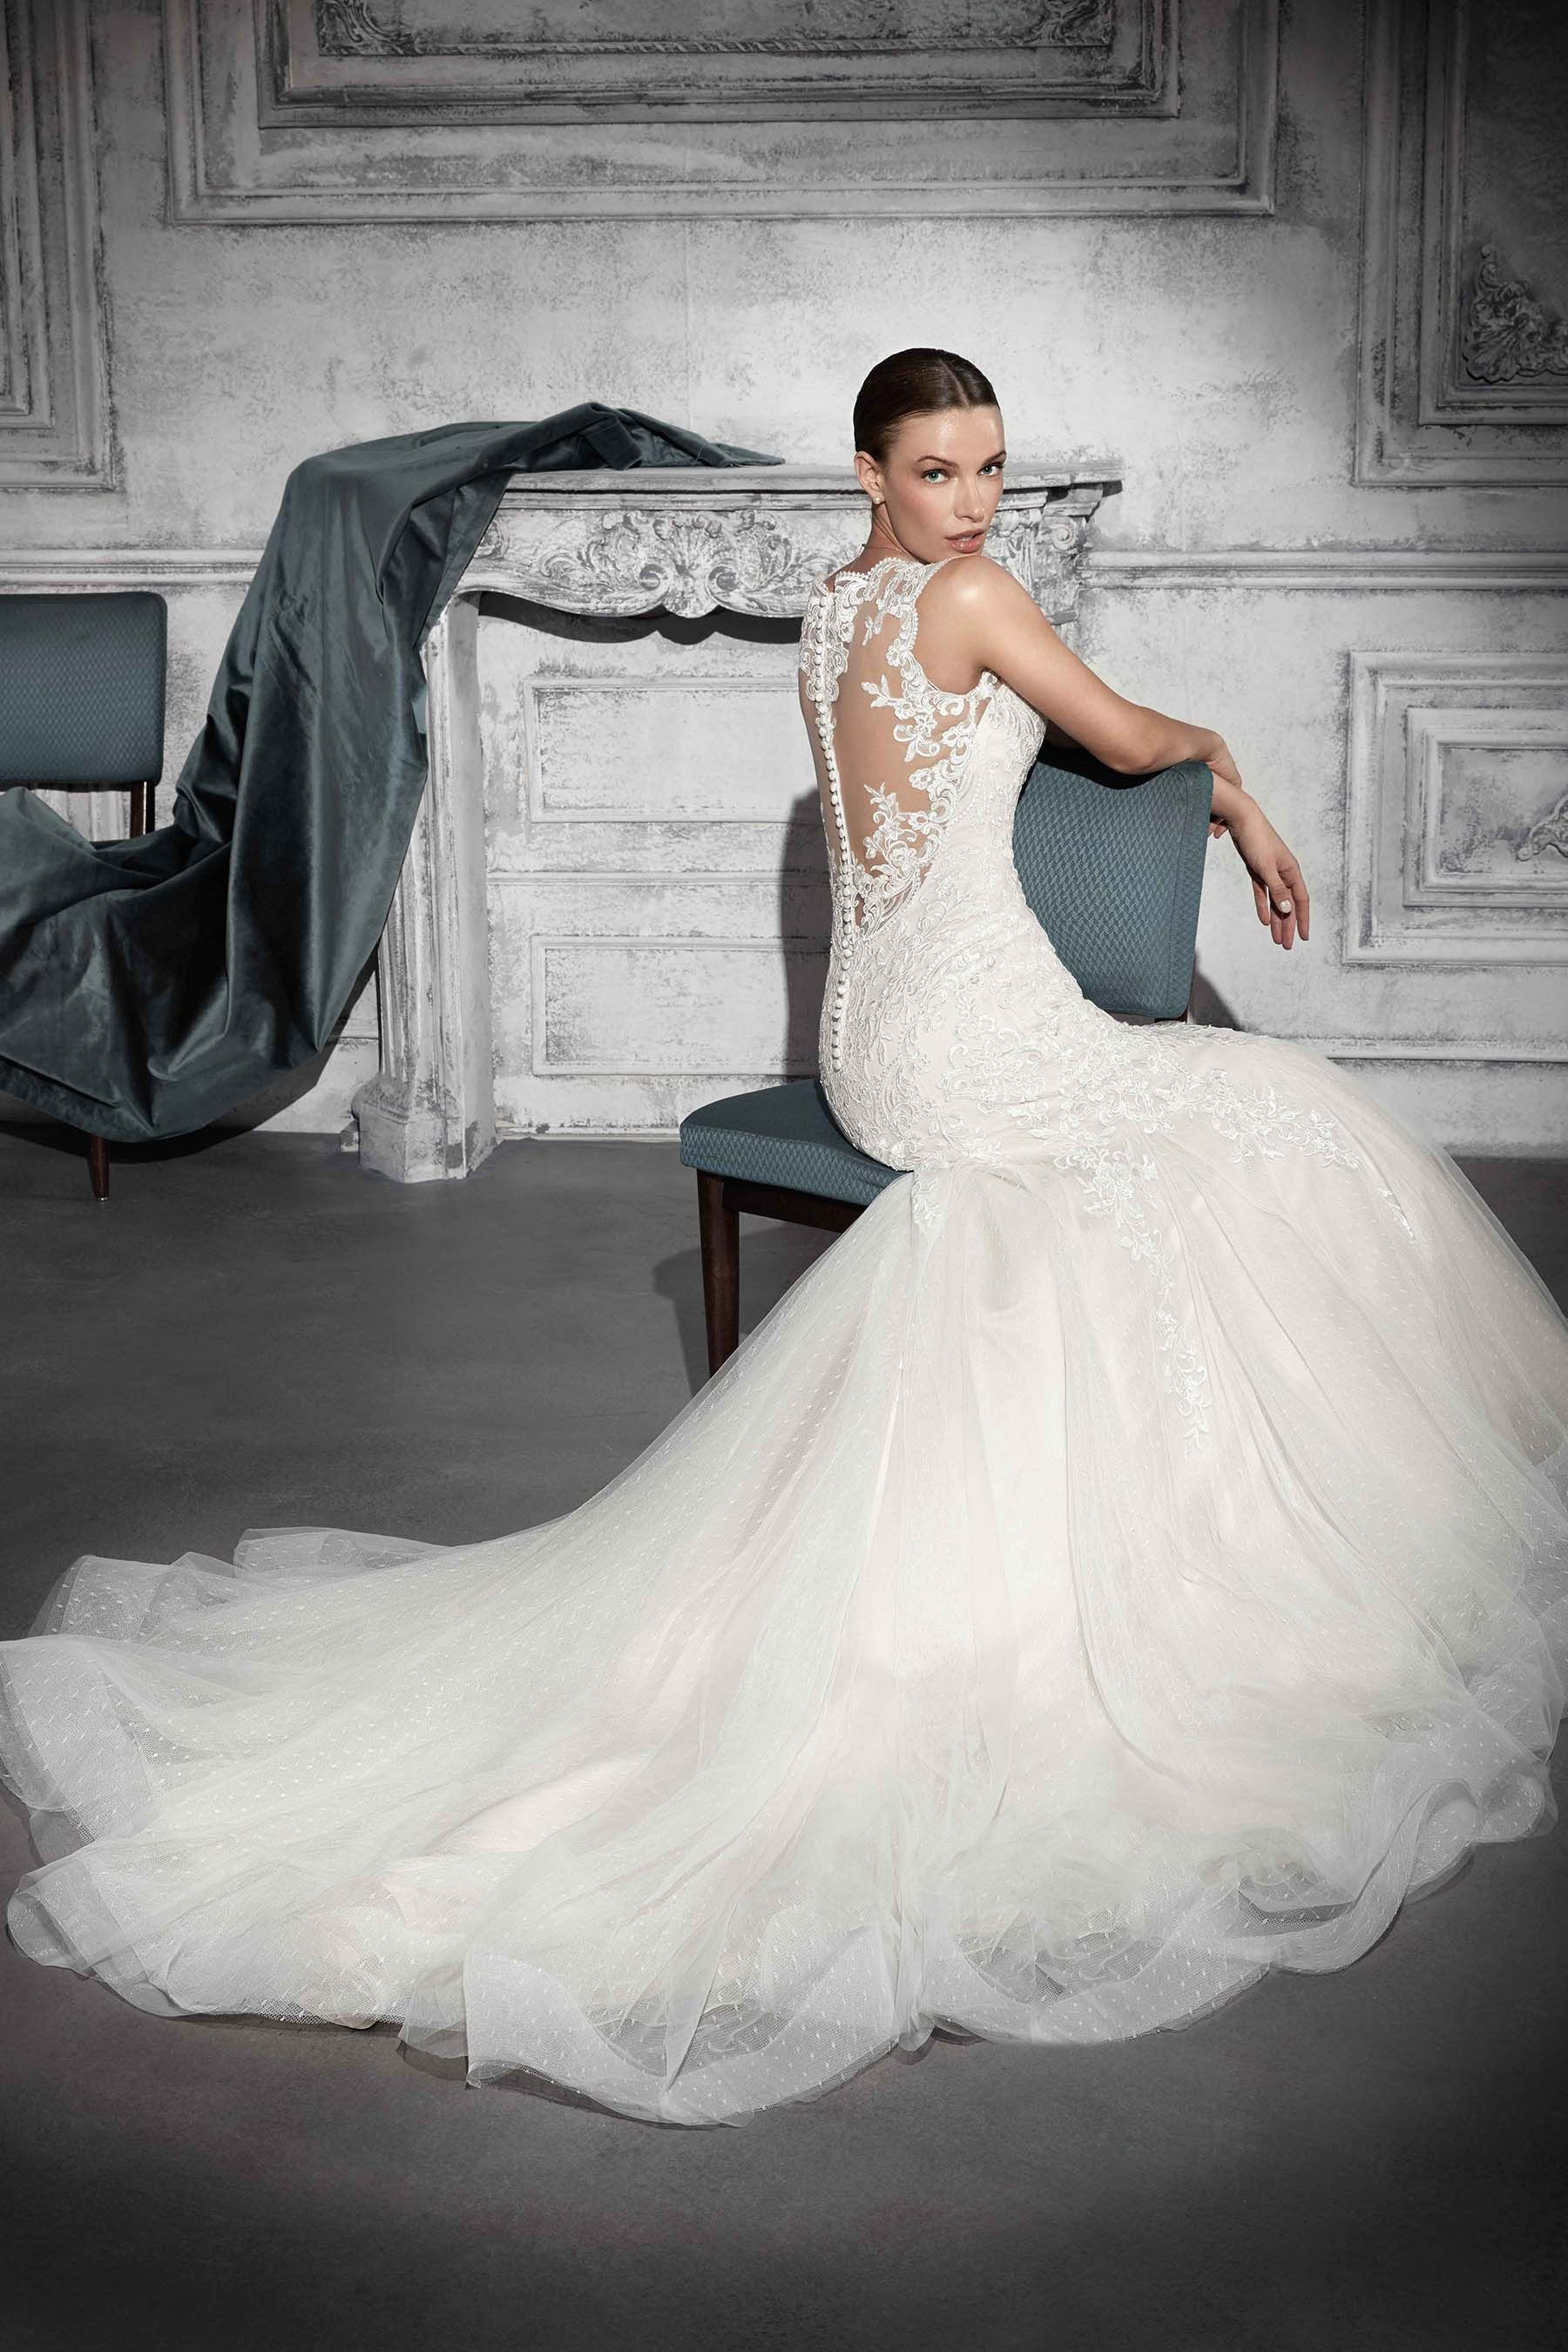 bf9c6eeddd8 Demetrios 2018 Style 742 This Tulle and lace mermaid gown captures ...